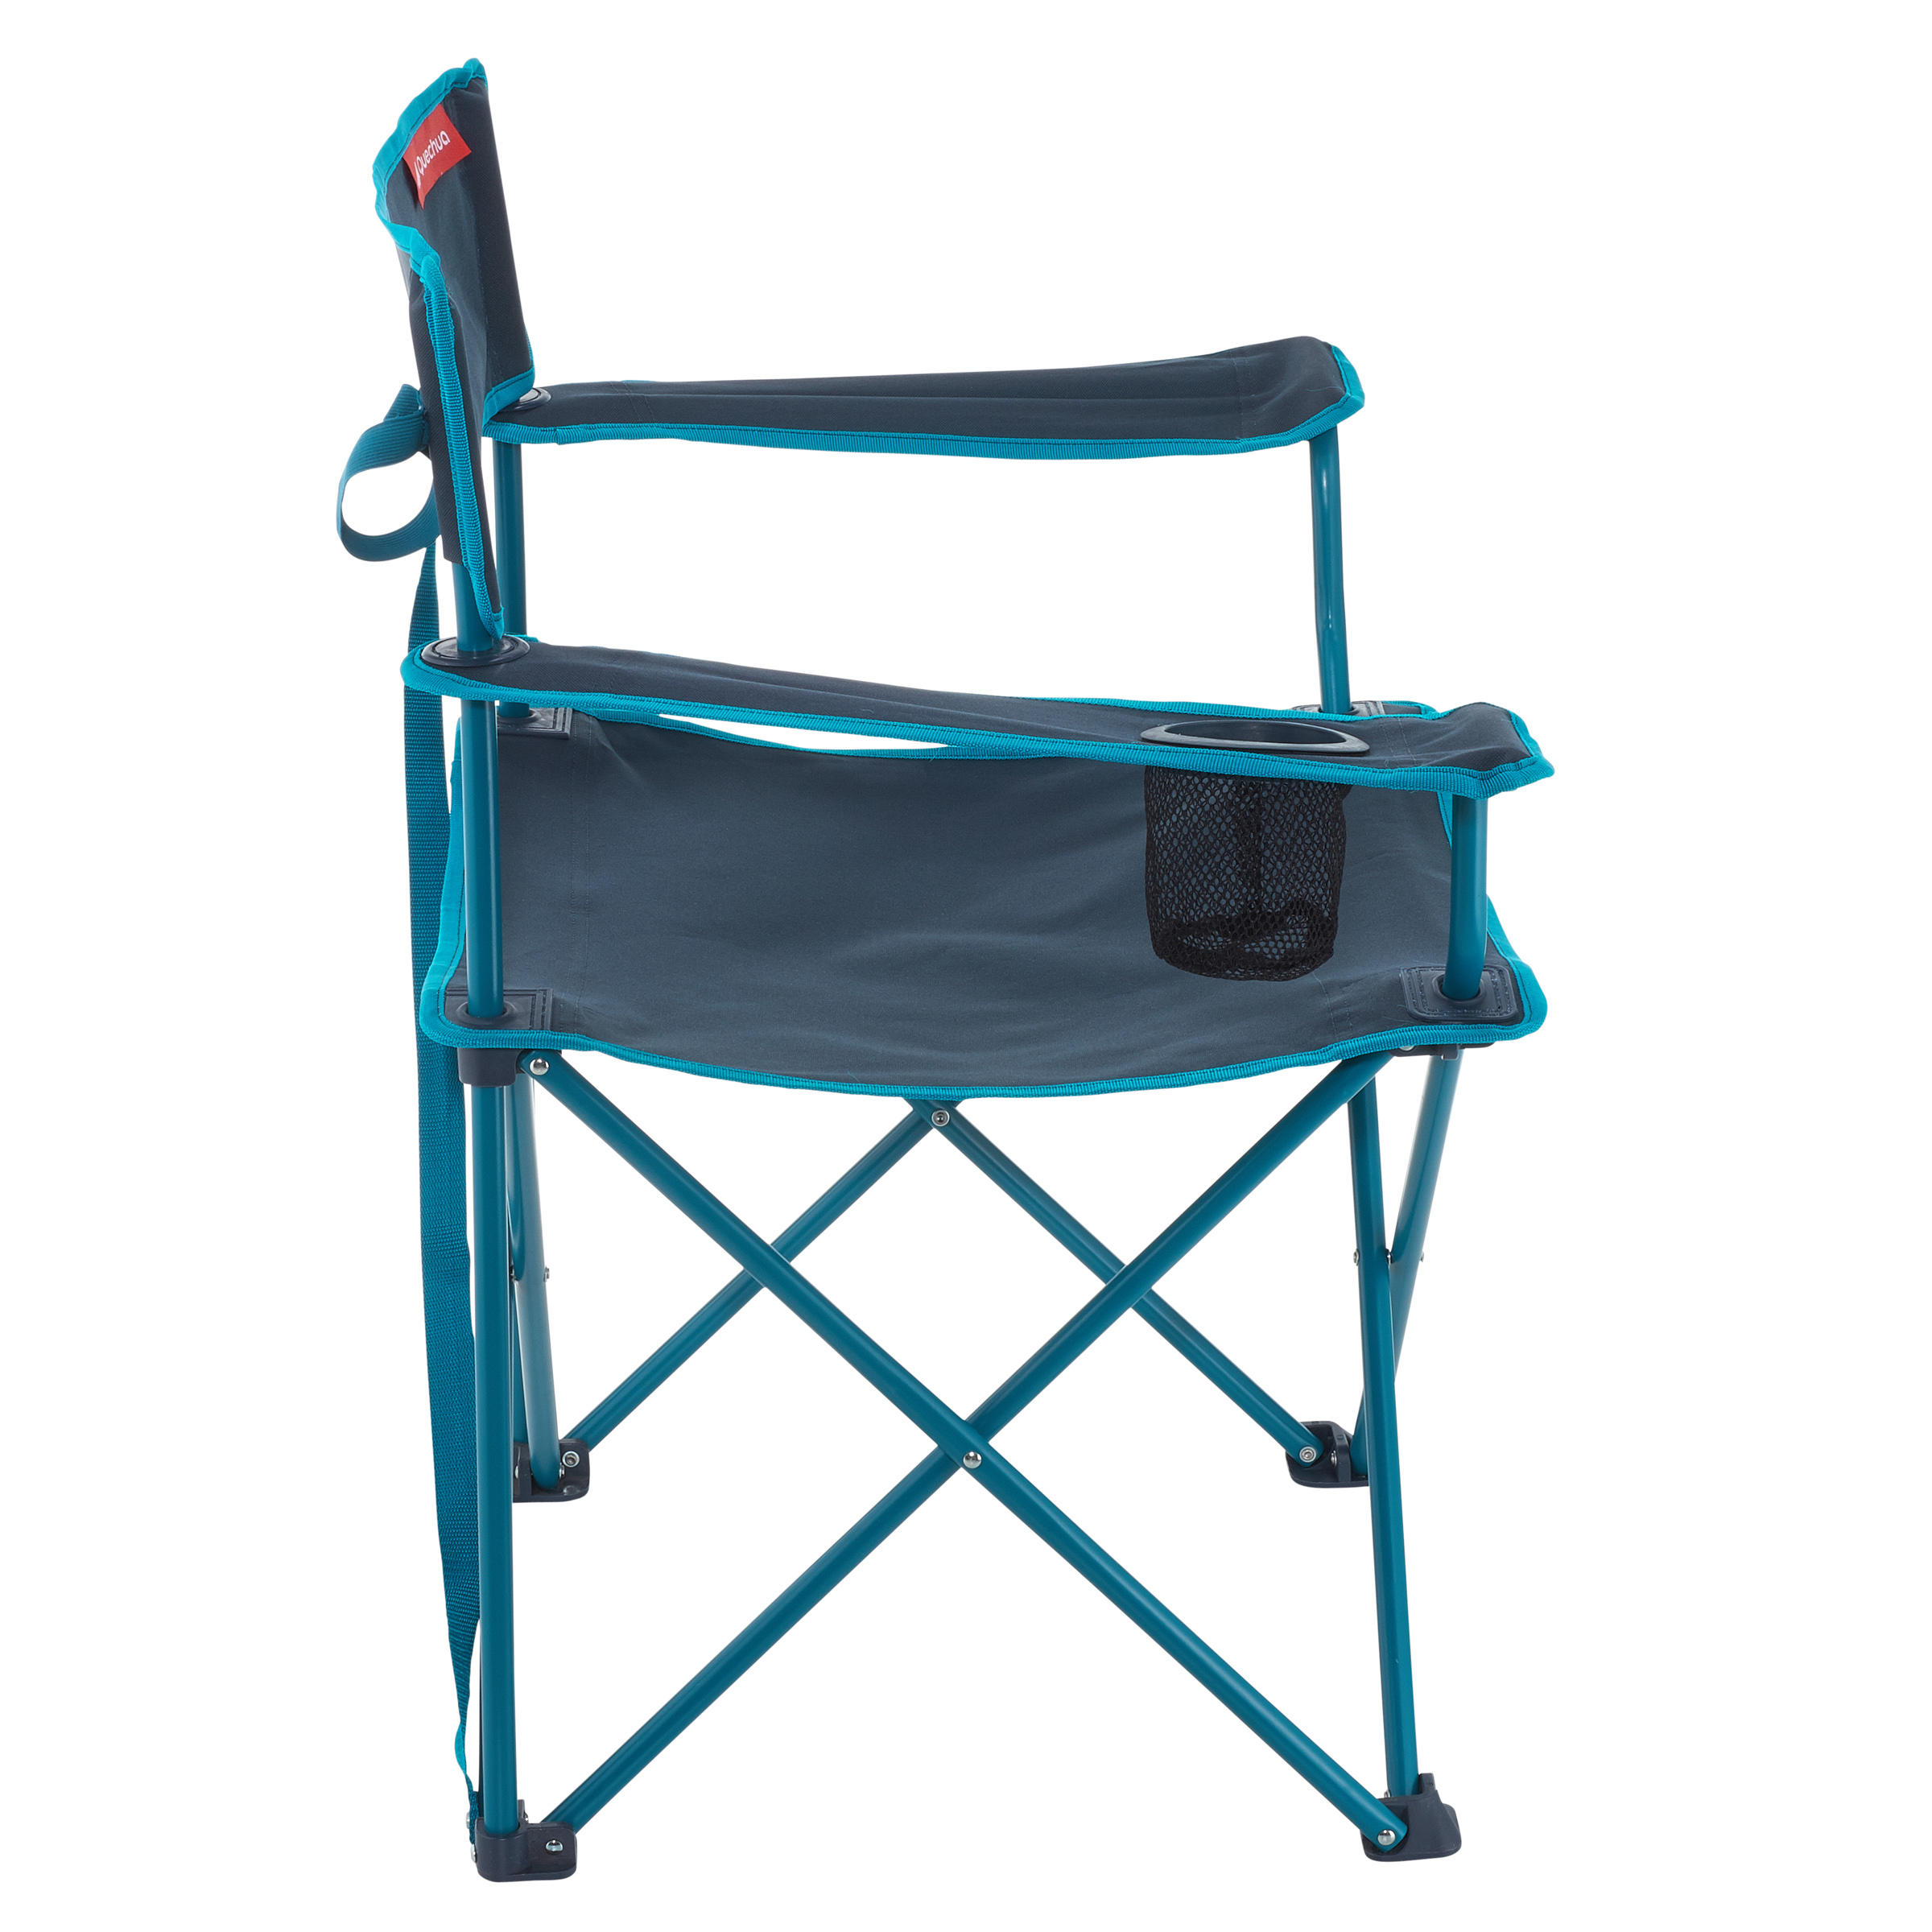 BLUE FOLDING CHAIR FOR CAMPING